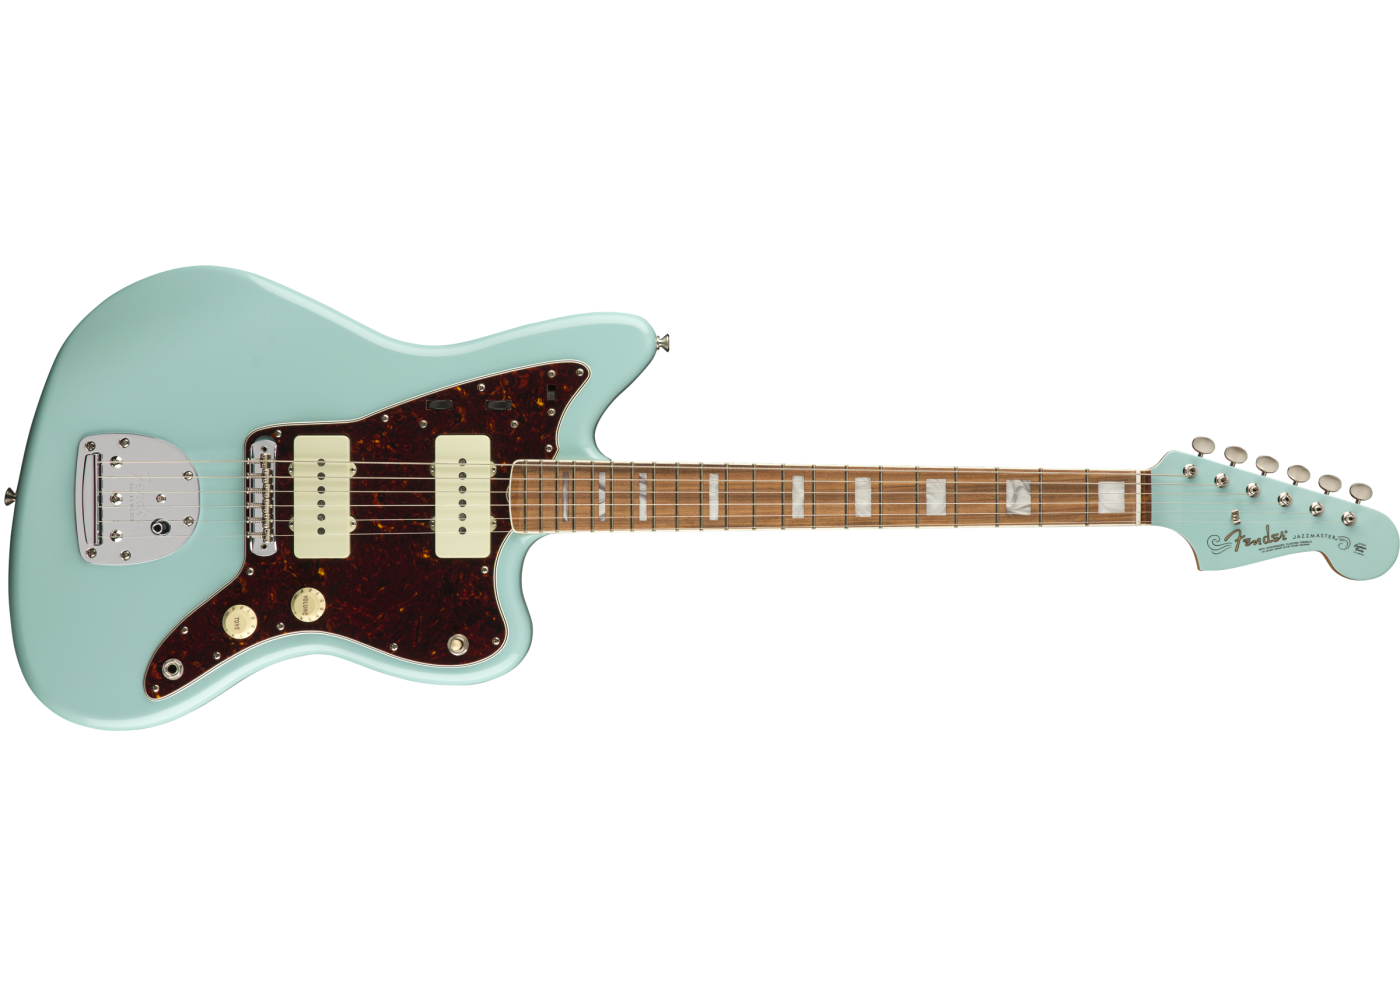 fender limited 60th anniv classic jazzmaster daphne blue electric guitar w case. Black Bedroom Furniture Sets. Home Design Ideas